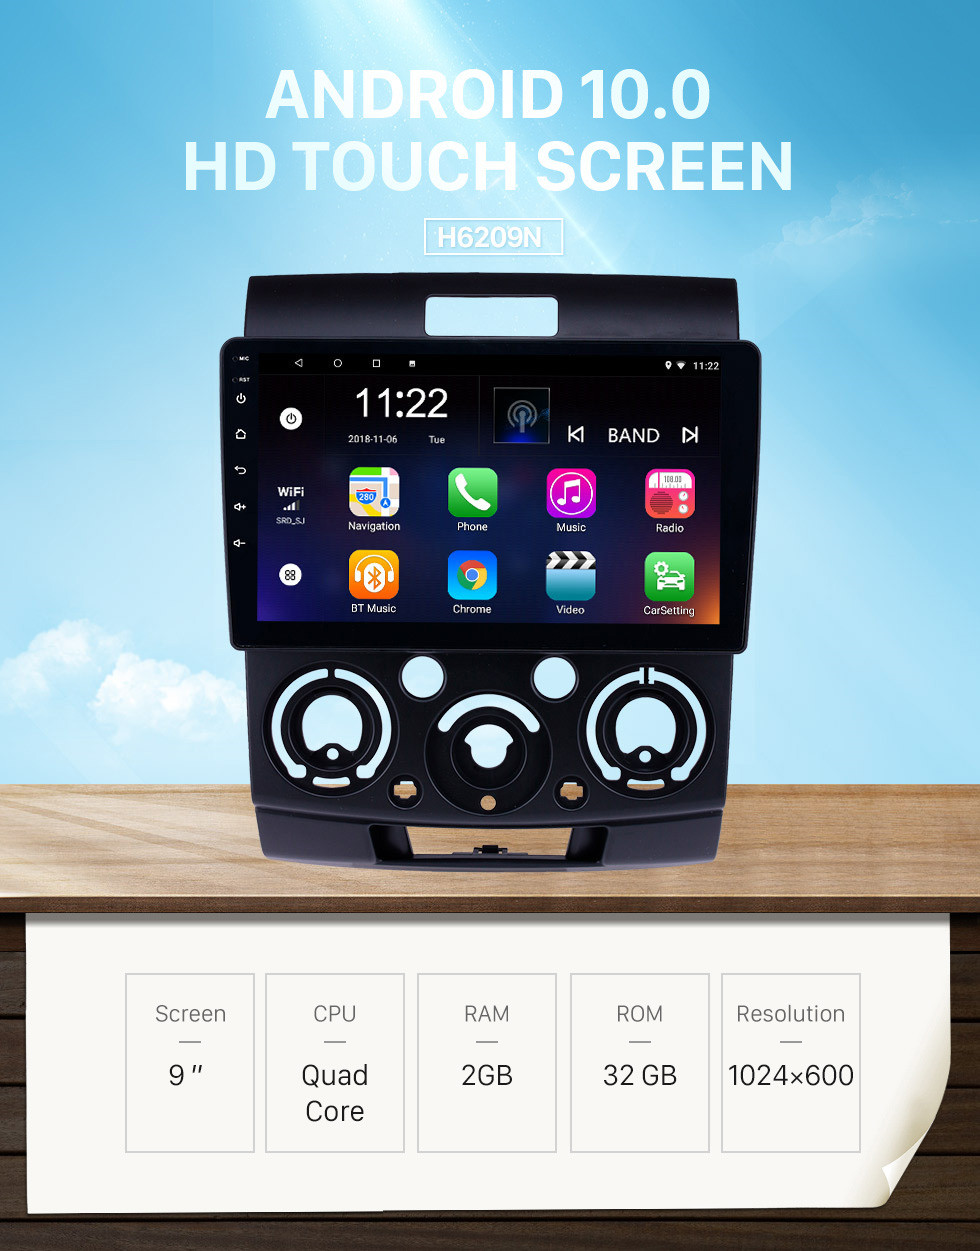 Seicane HD Touchscreen 9 inch Android 10.0 GPS Navigation Radio for 2006-2010 Mazda BT-50 with Bluetooth AUX Music support DVR Carplay OBD Rearview camera